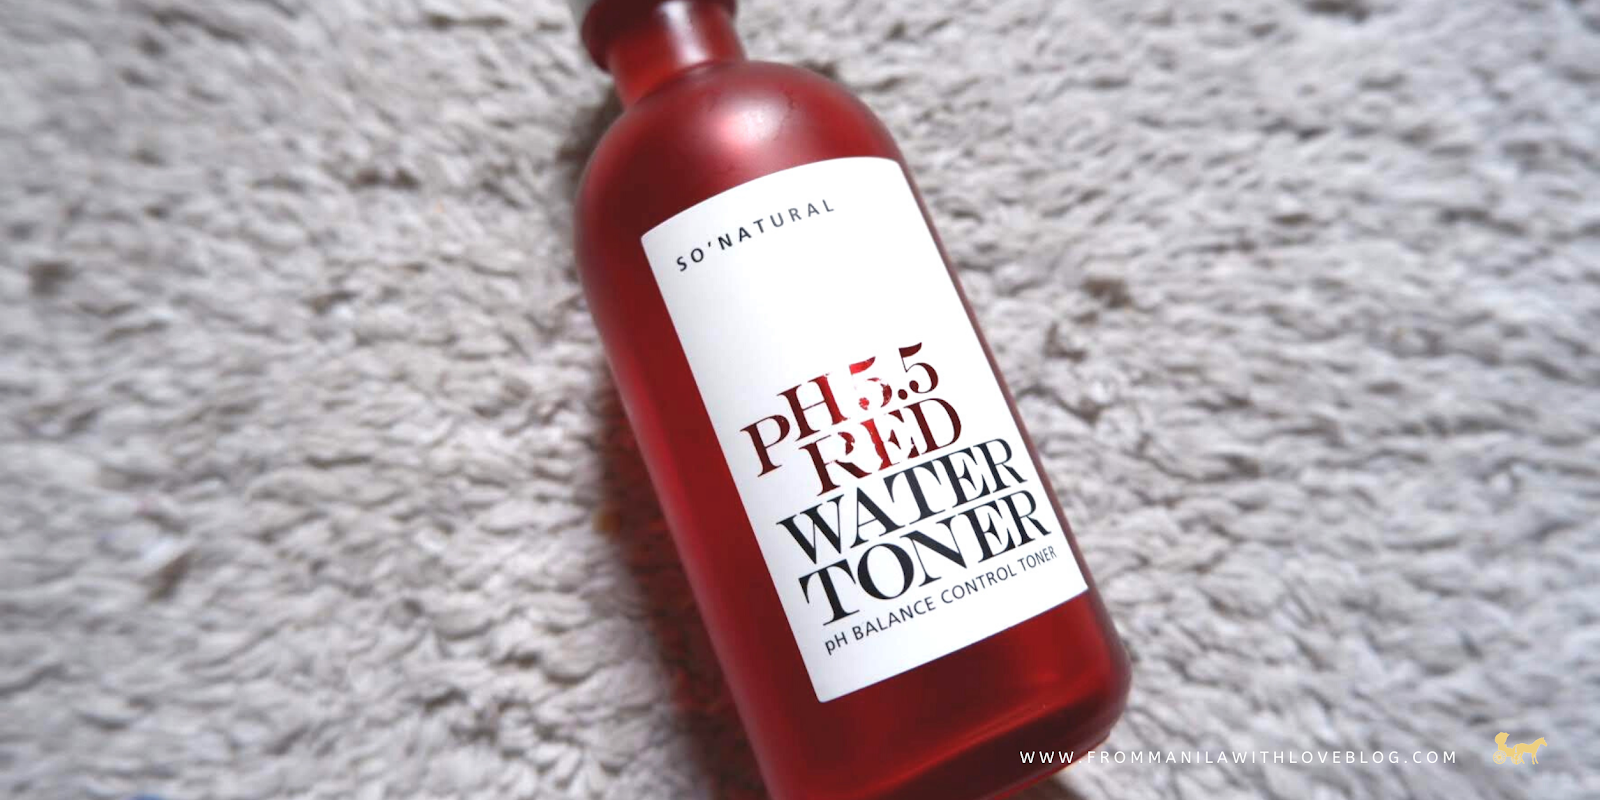 an image of a matte glass red bottle on a rug